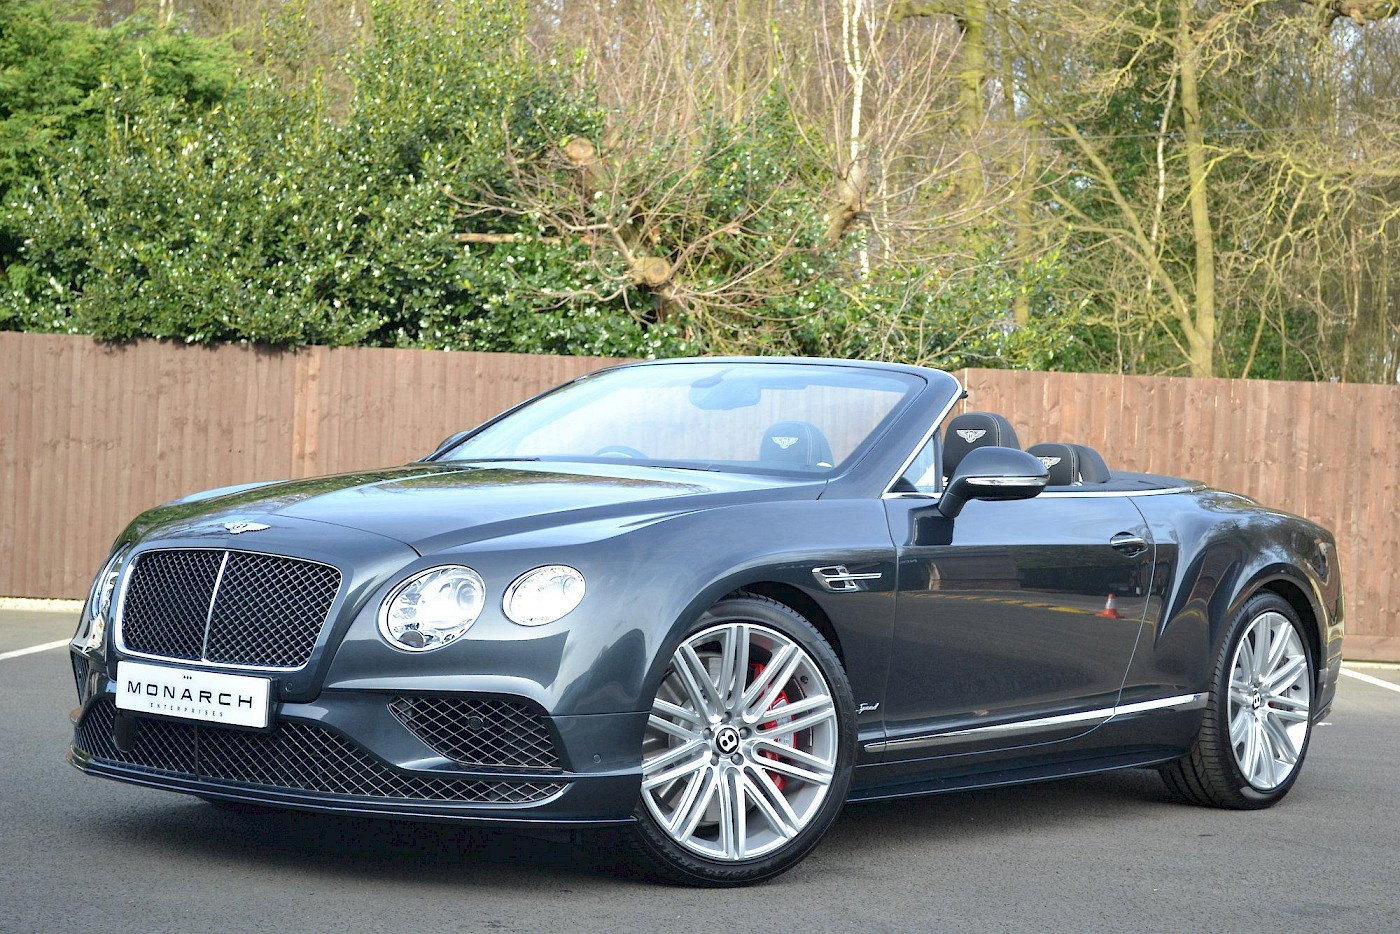 2016/16 Bentley Continental GT Speed convertible 4